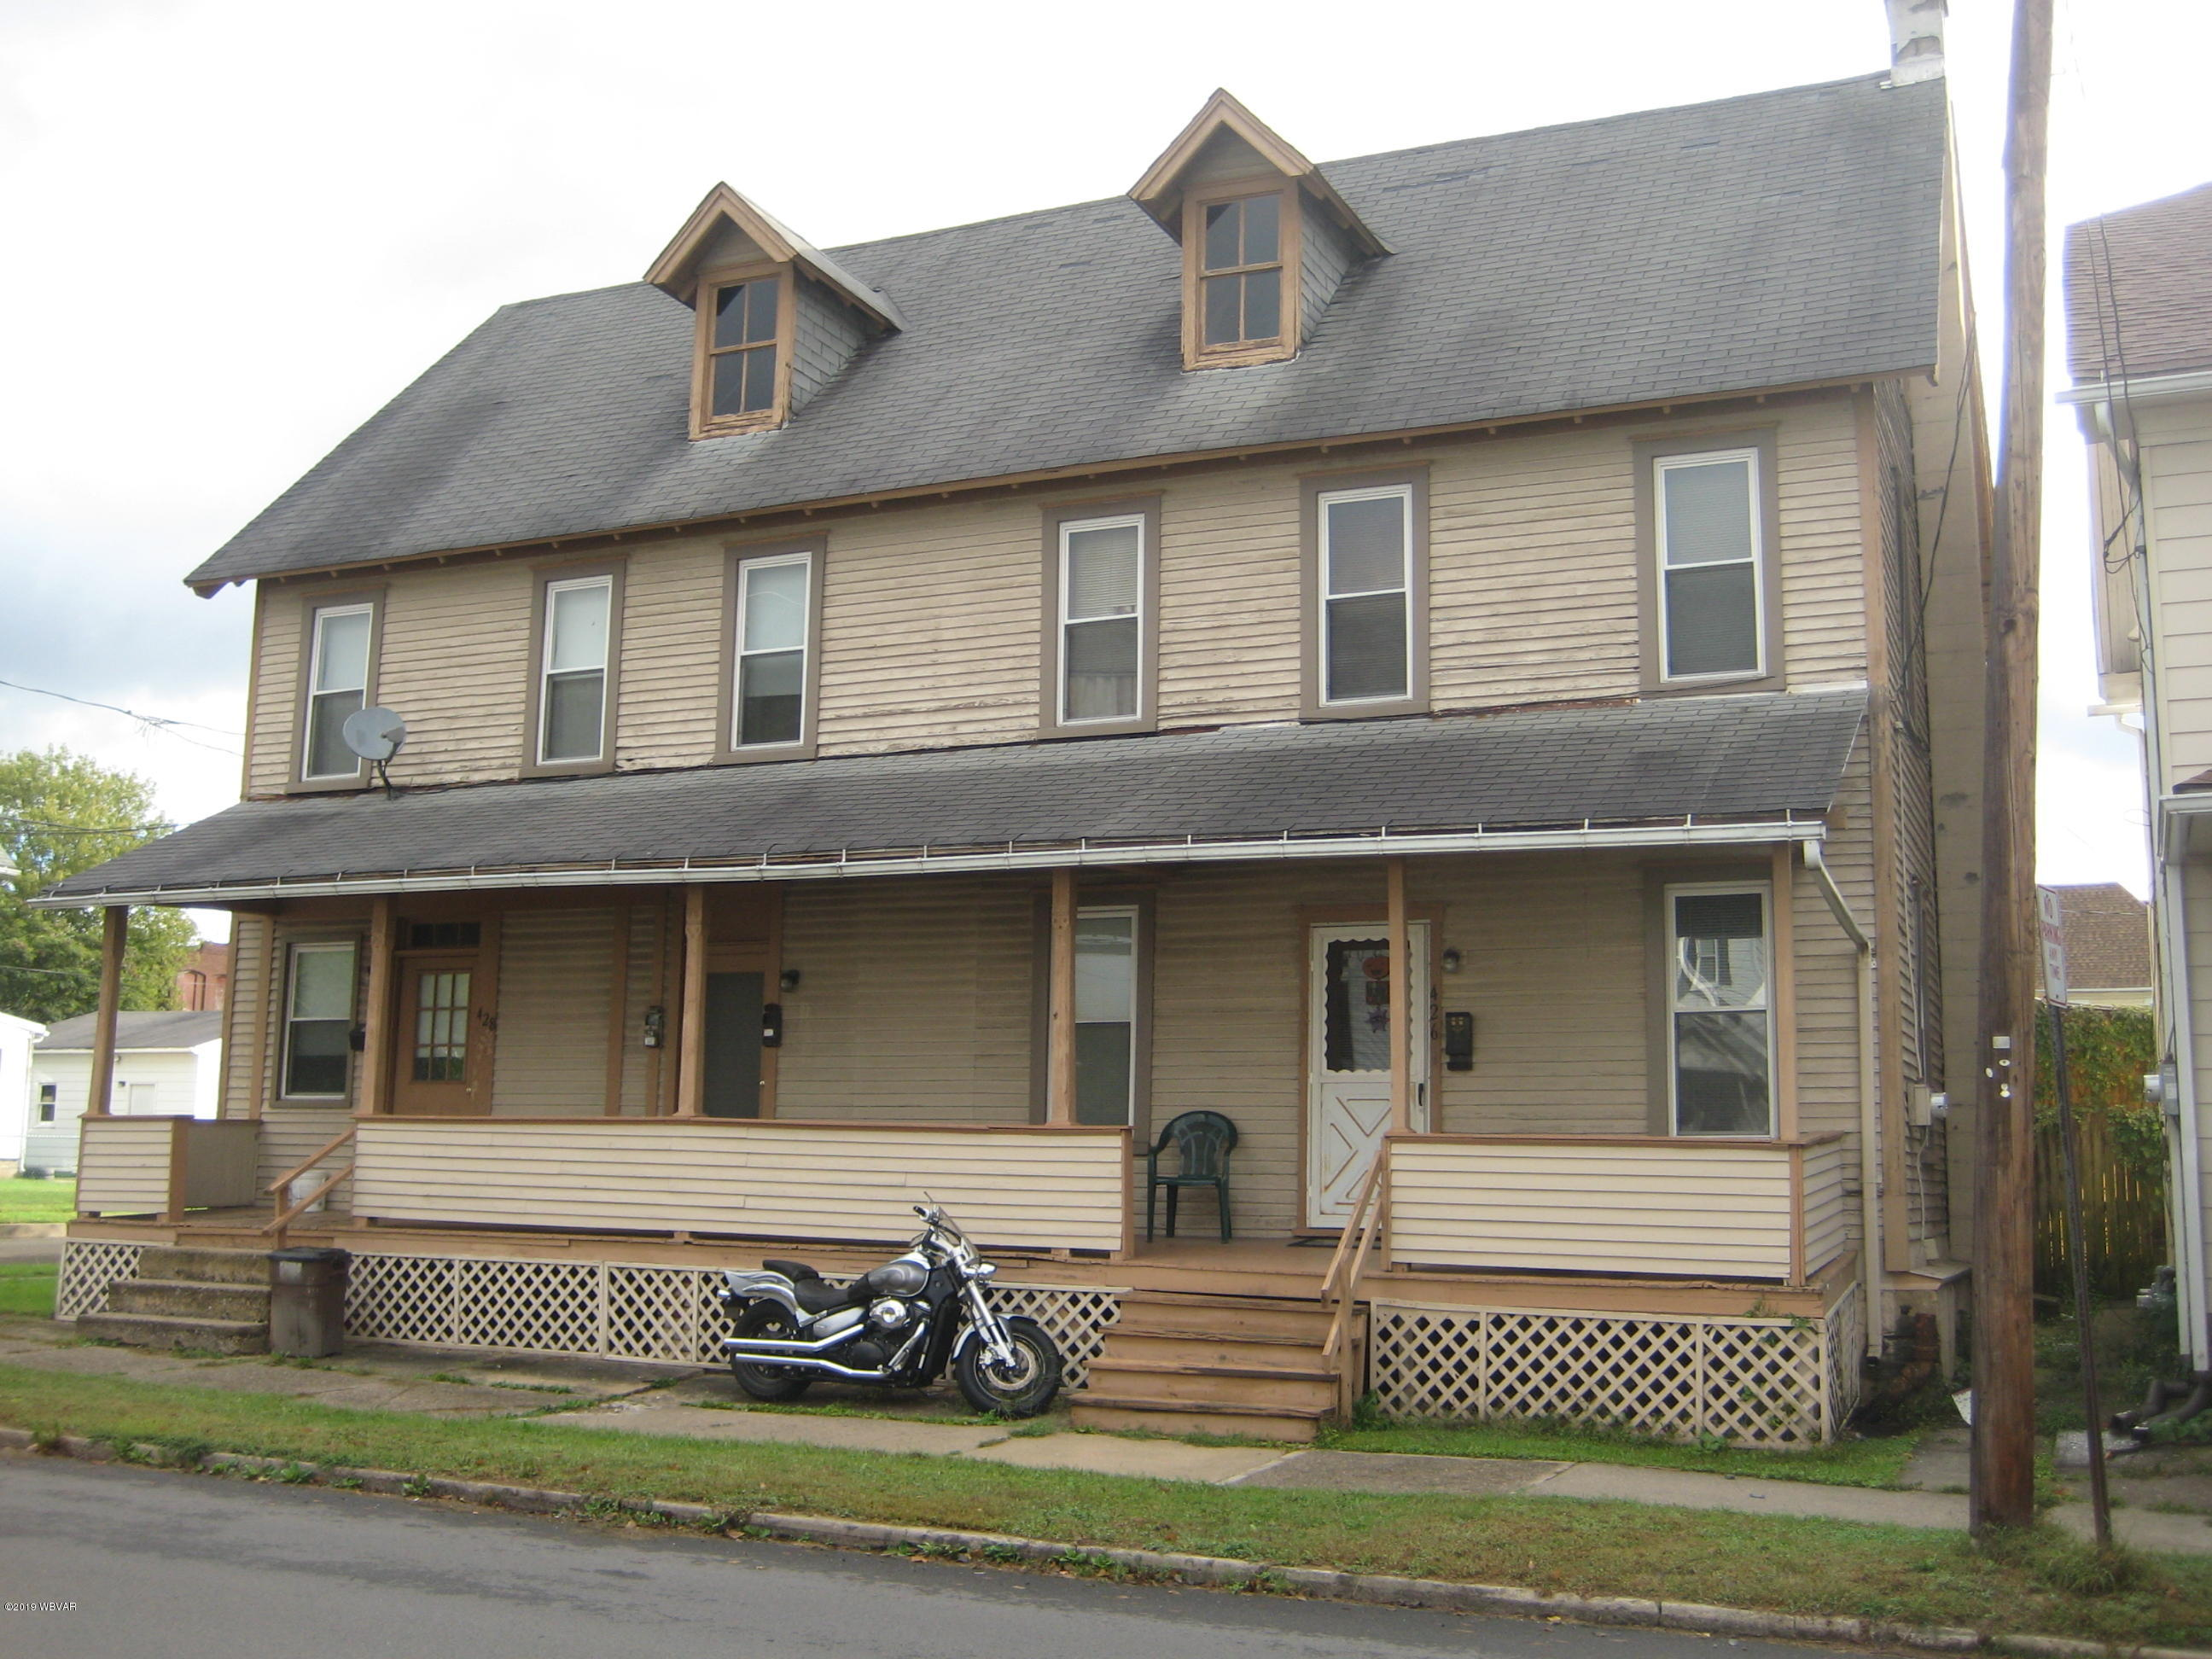 426-428 CEMETERY STREET, Williamsport, PA 17701, ,Multi-units,For sale,CEMETERY,WB-88777